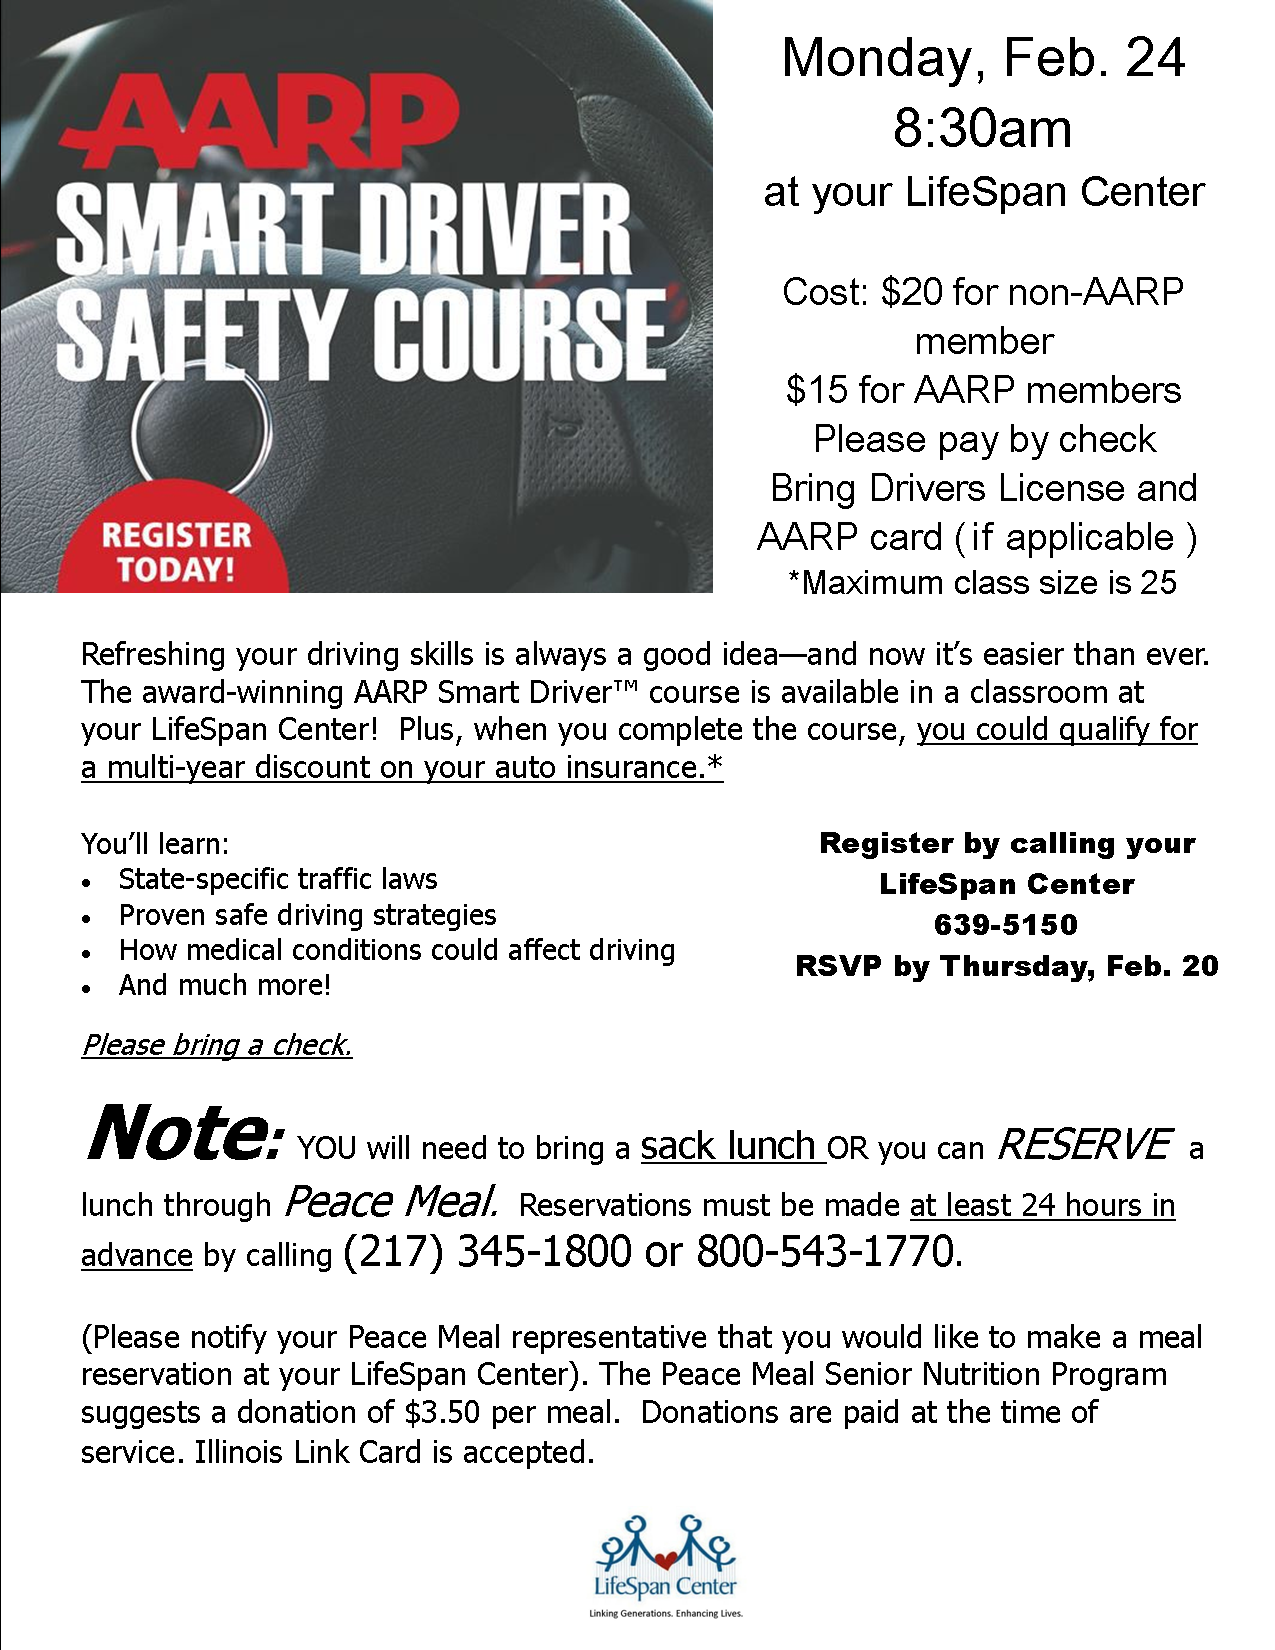 AARP_Smart_Driver_course4743.png